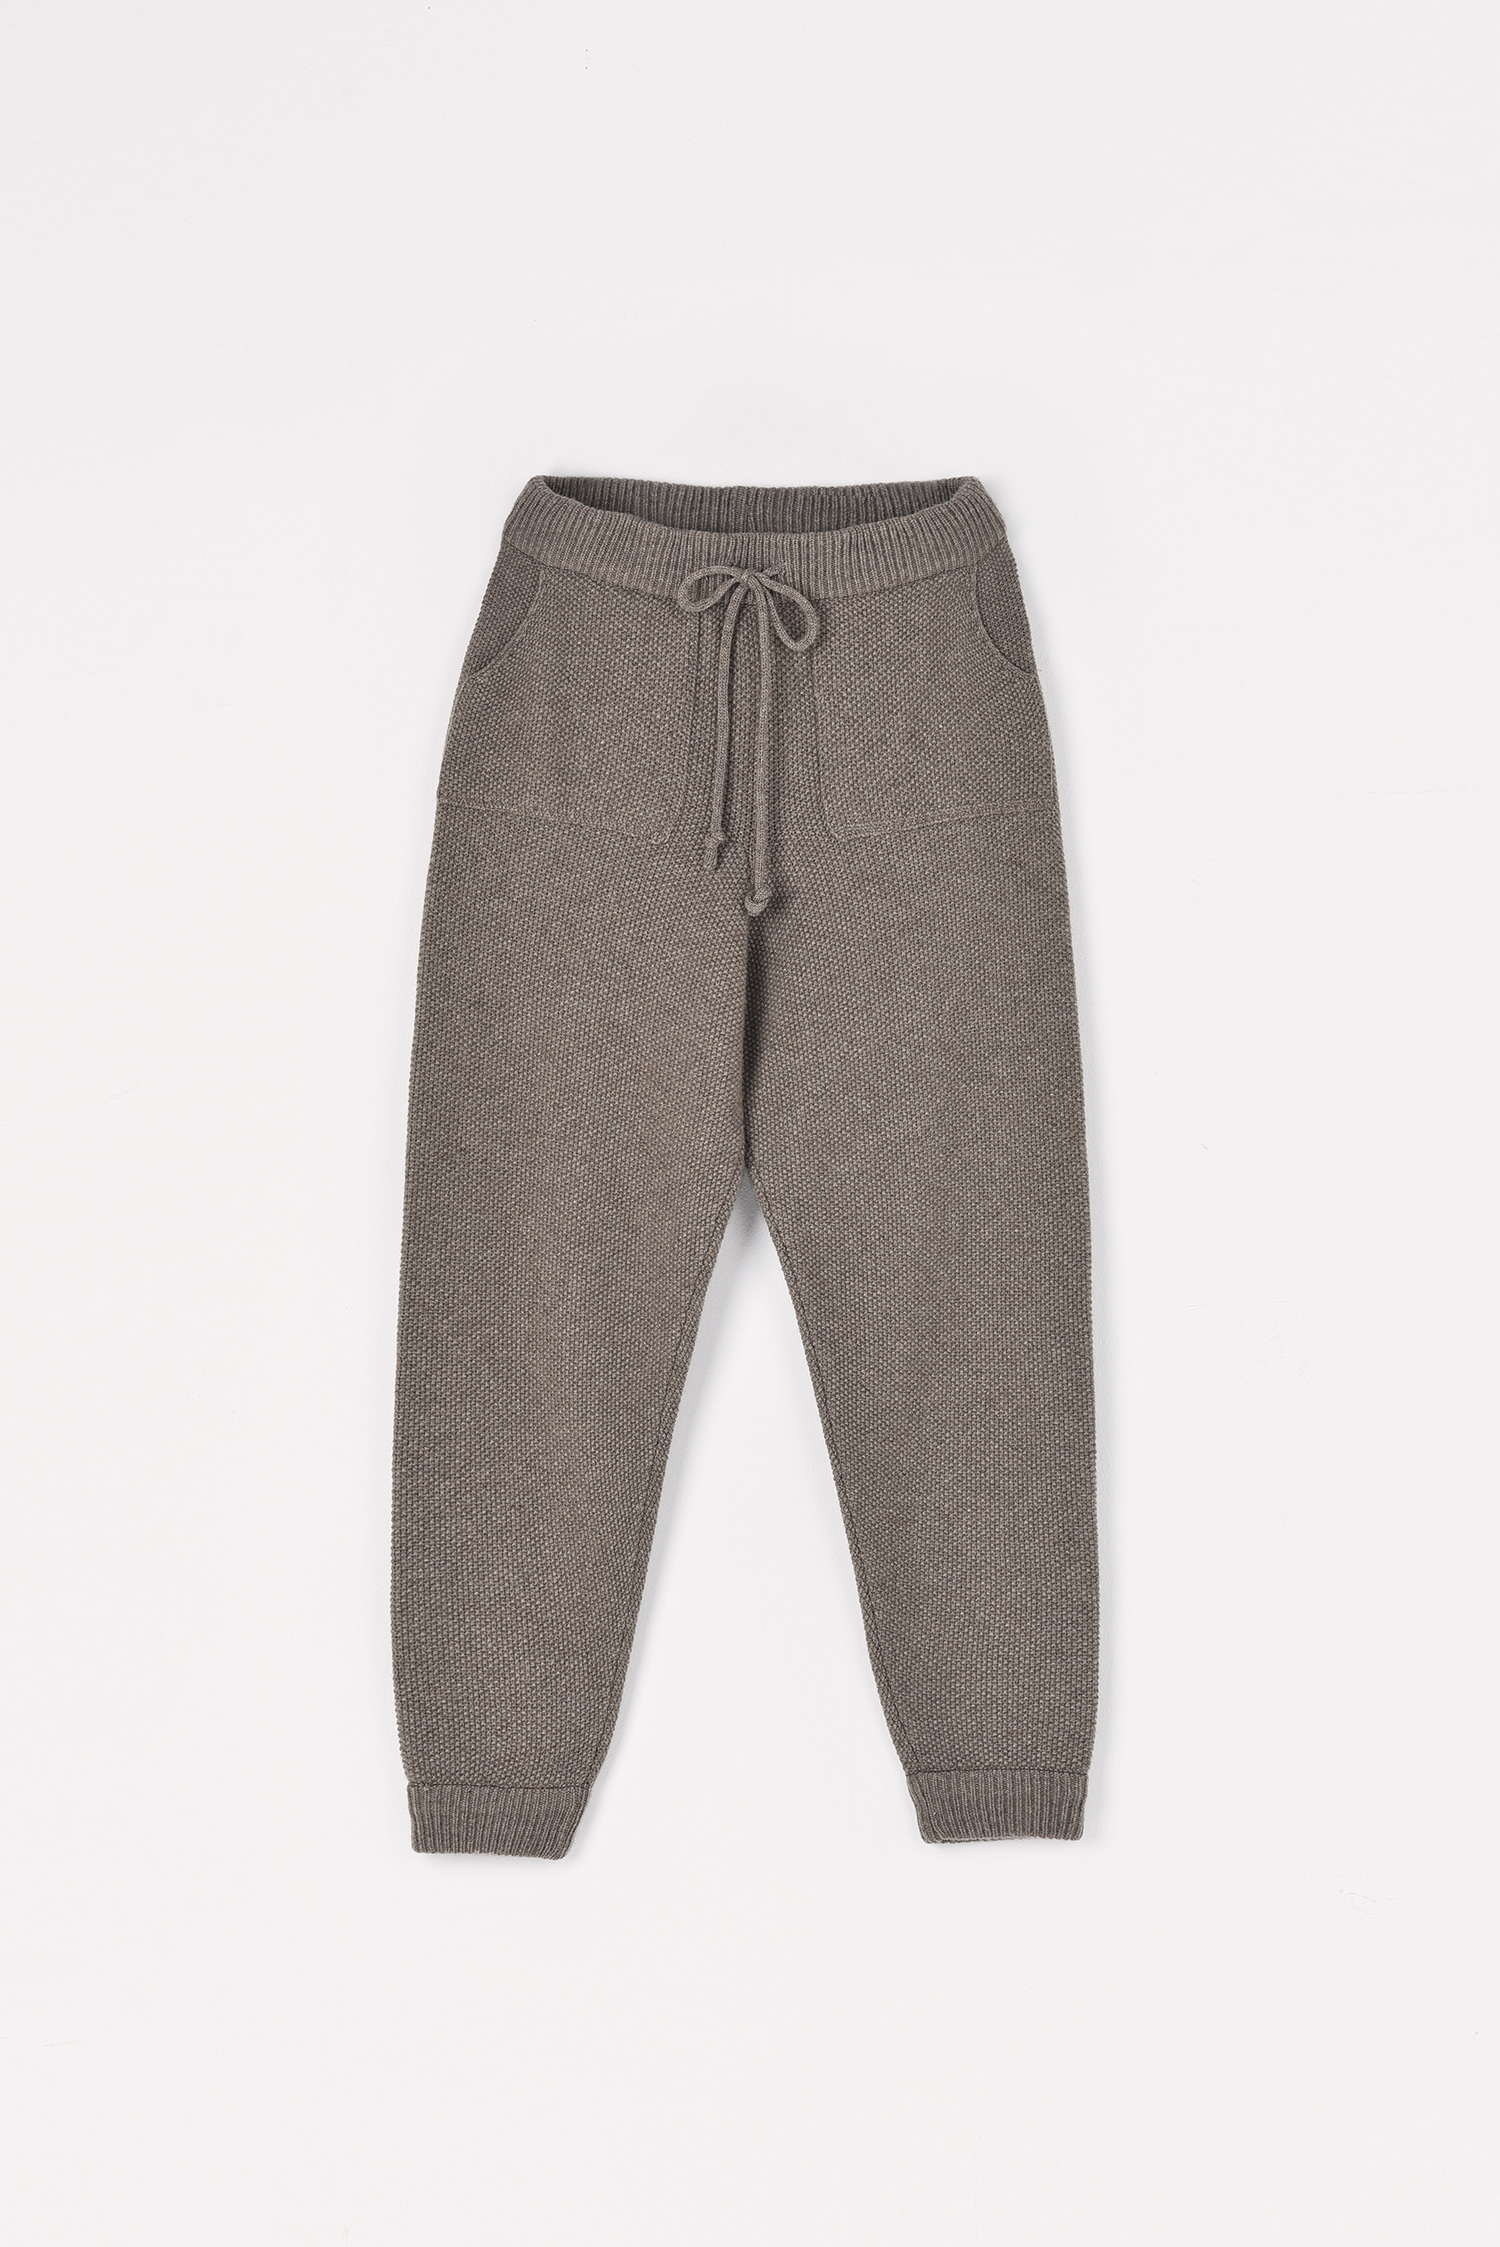 Cashmere knitting pants (Taupe)